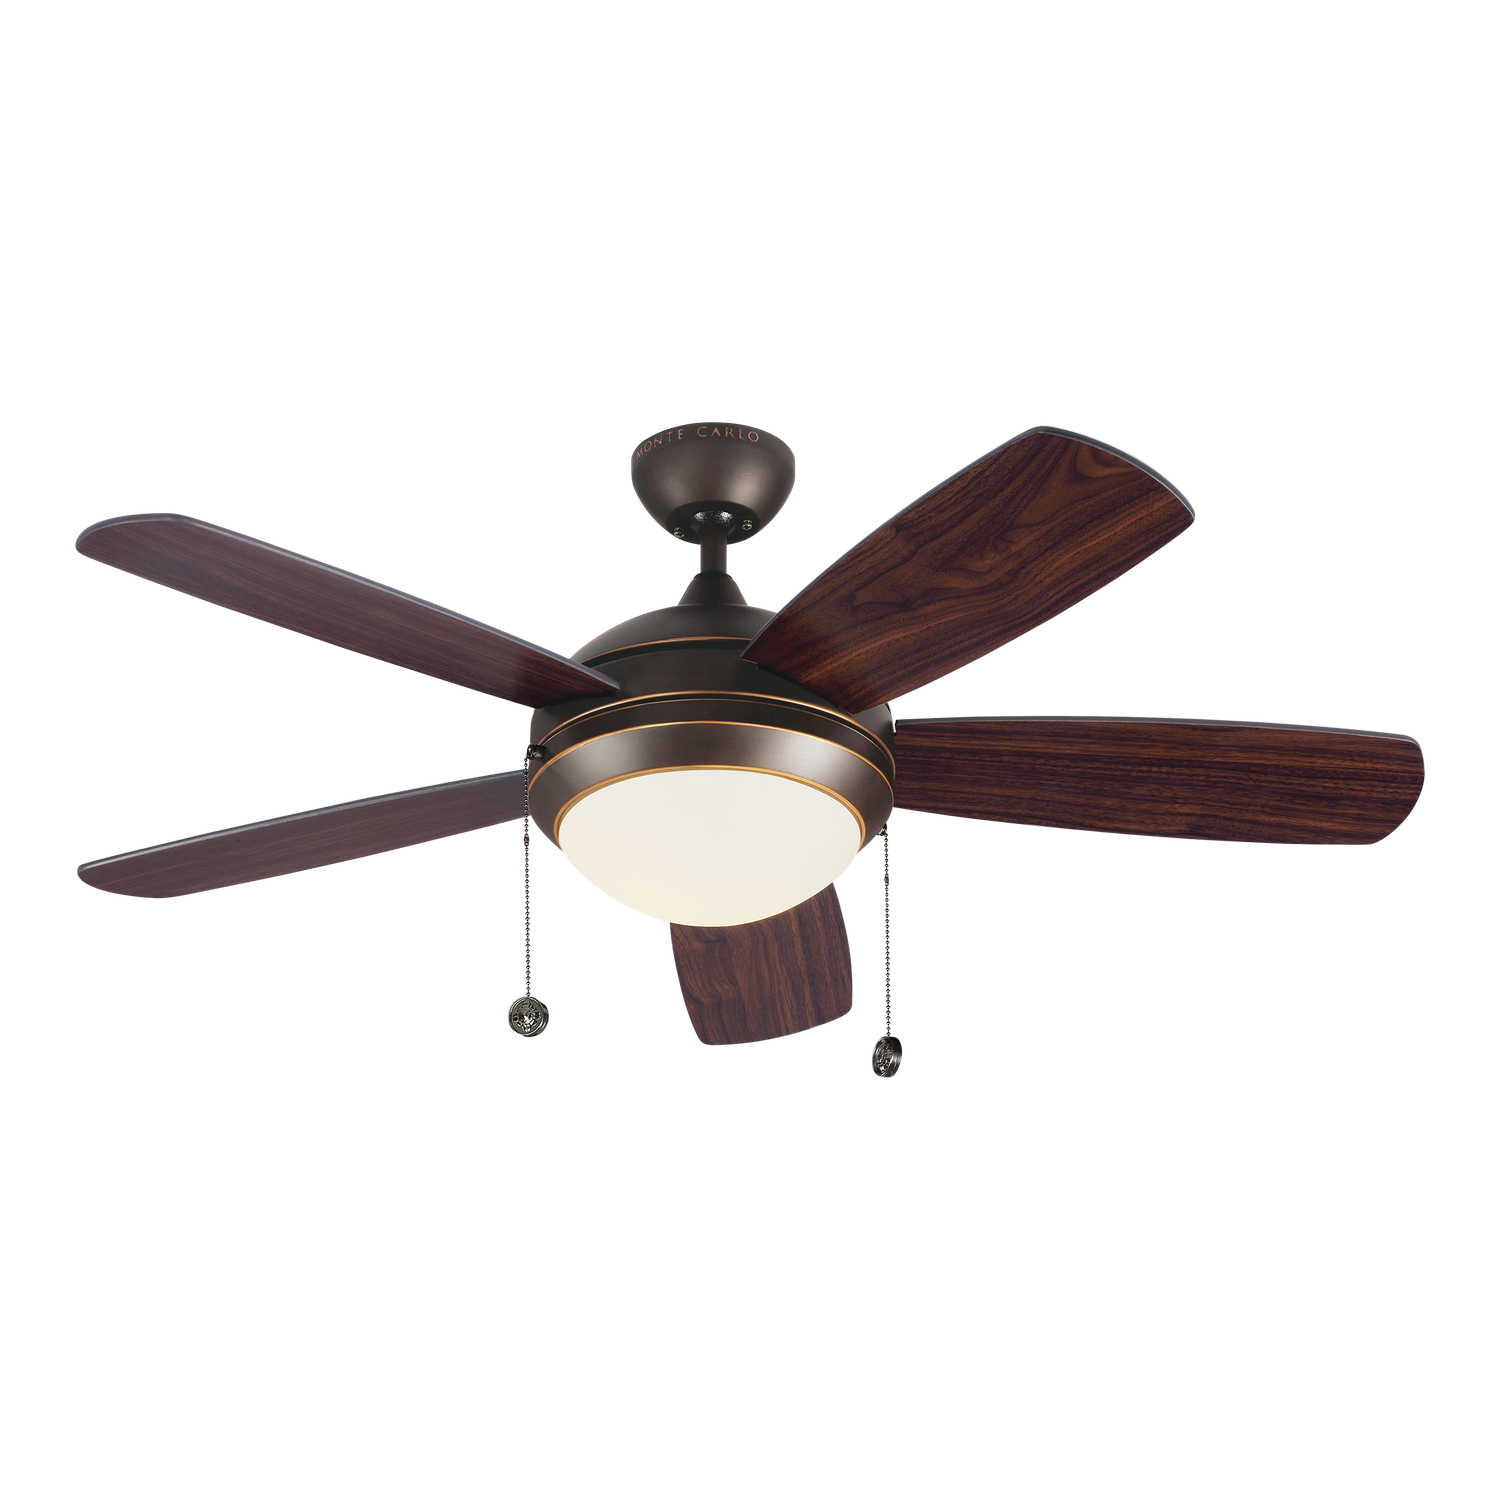 44 inch Ceiling Fan from the Discus Classic II collection by Monte Carlo 5DIC44RBD V1